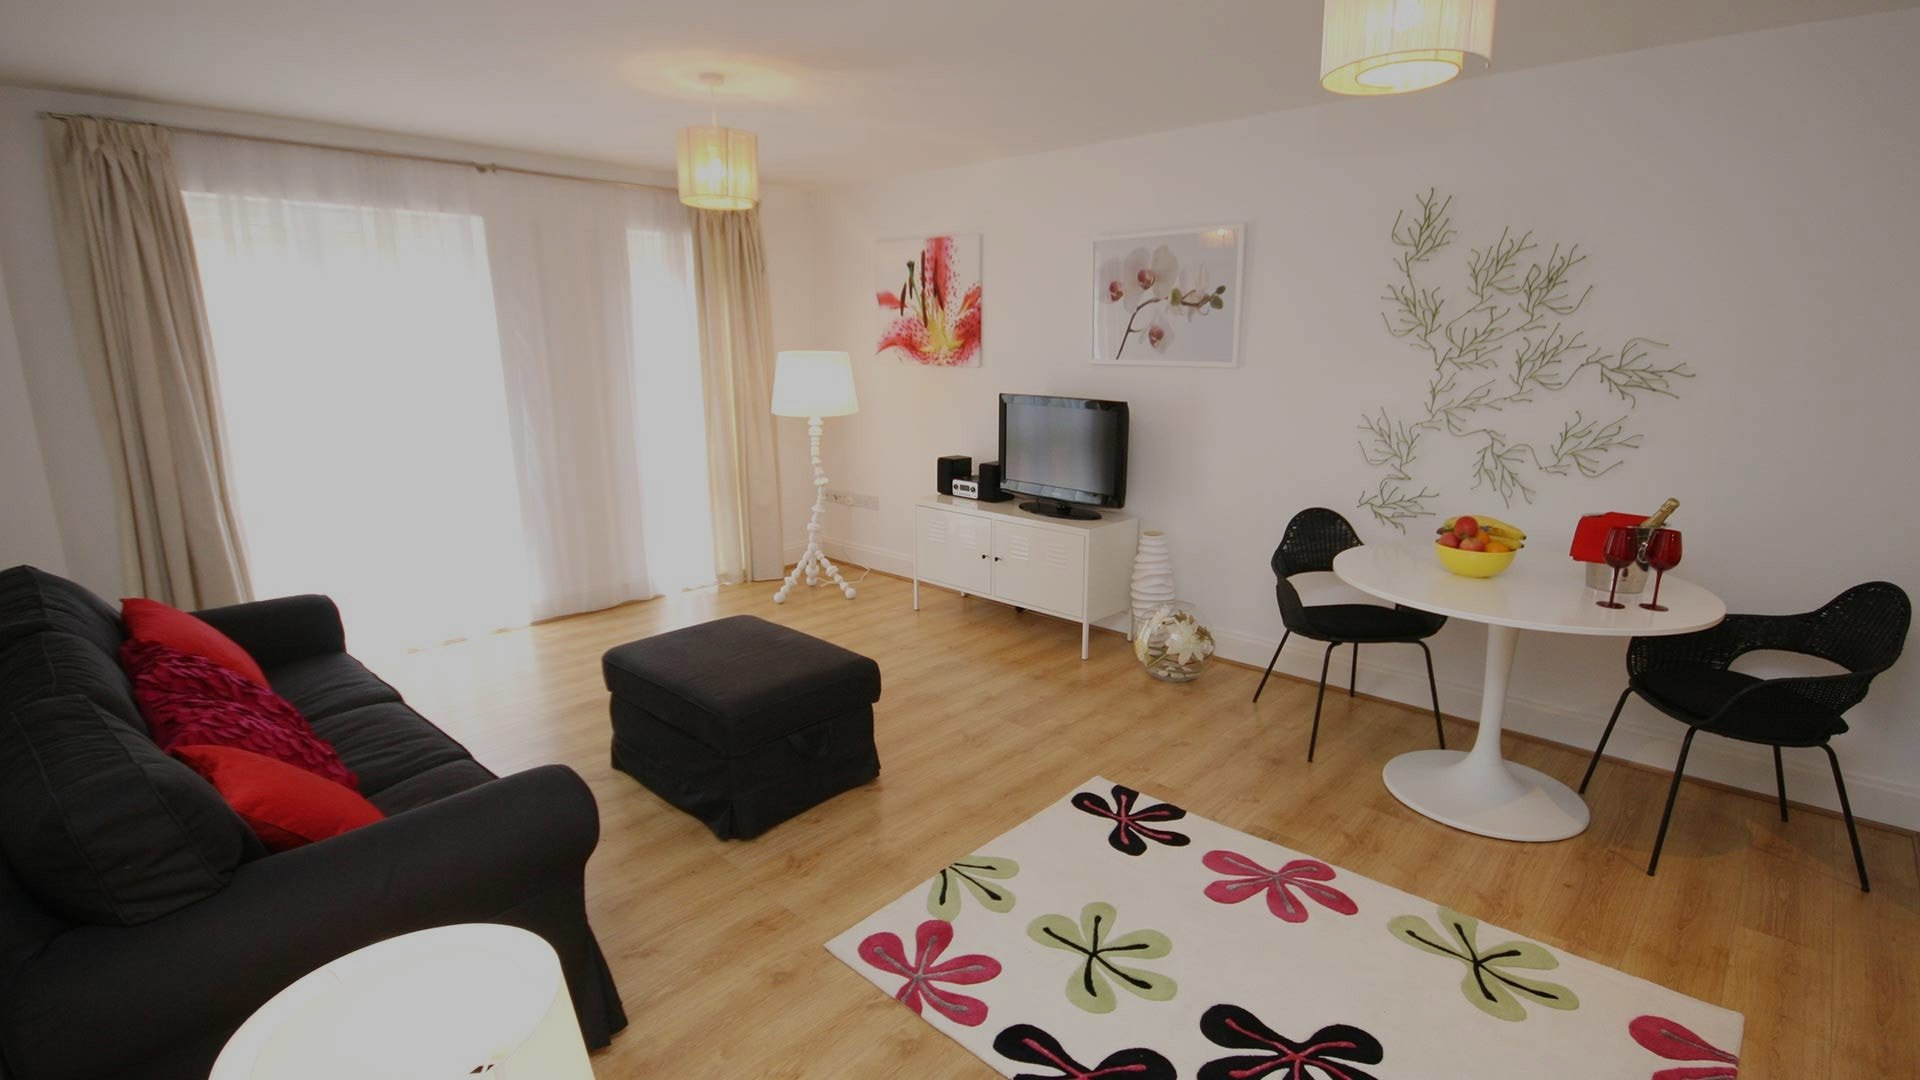 Pepys court - a one bedroom apartment in central Cambridge via Signet Apartments.